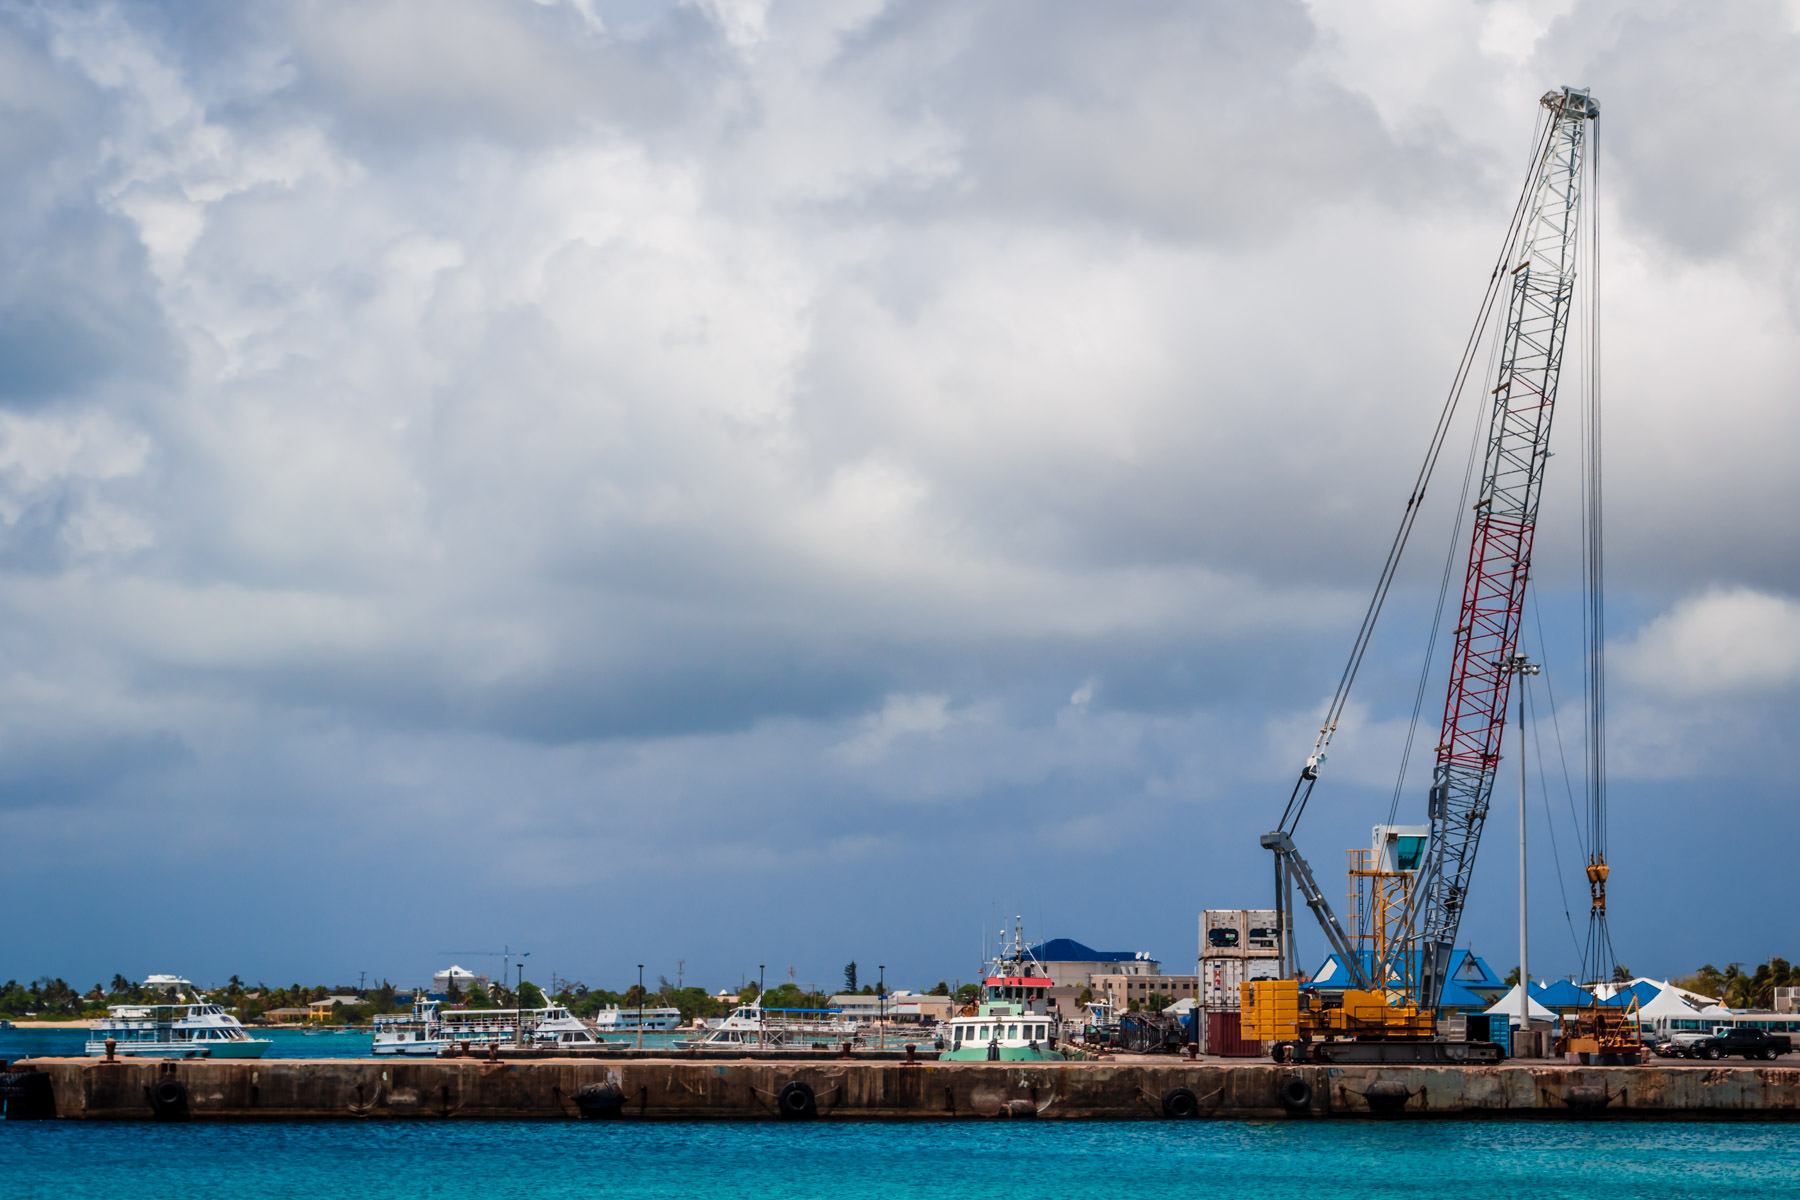 A crane on a wharf in George Town, Grand Cayman.